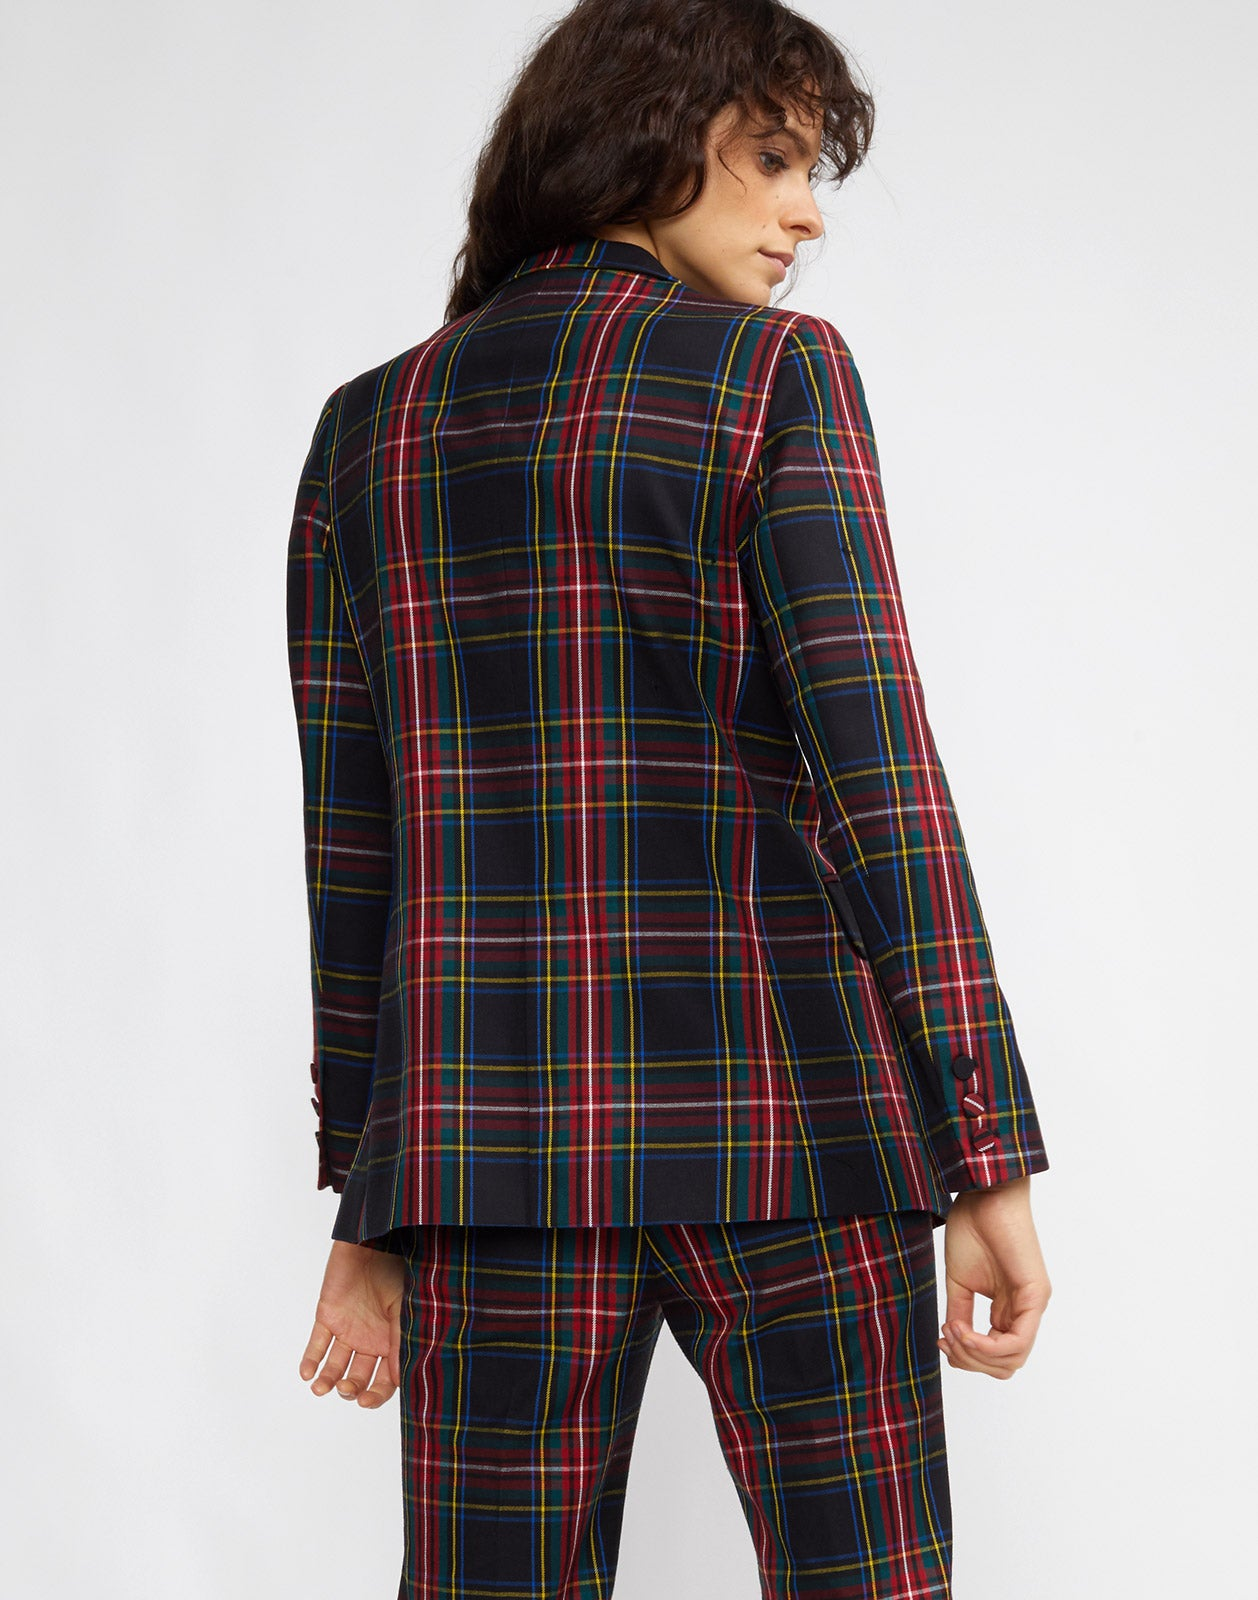 Back view of the Ridley Plaid Wool Blazer.